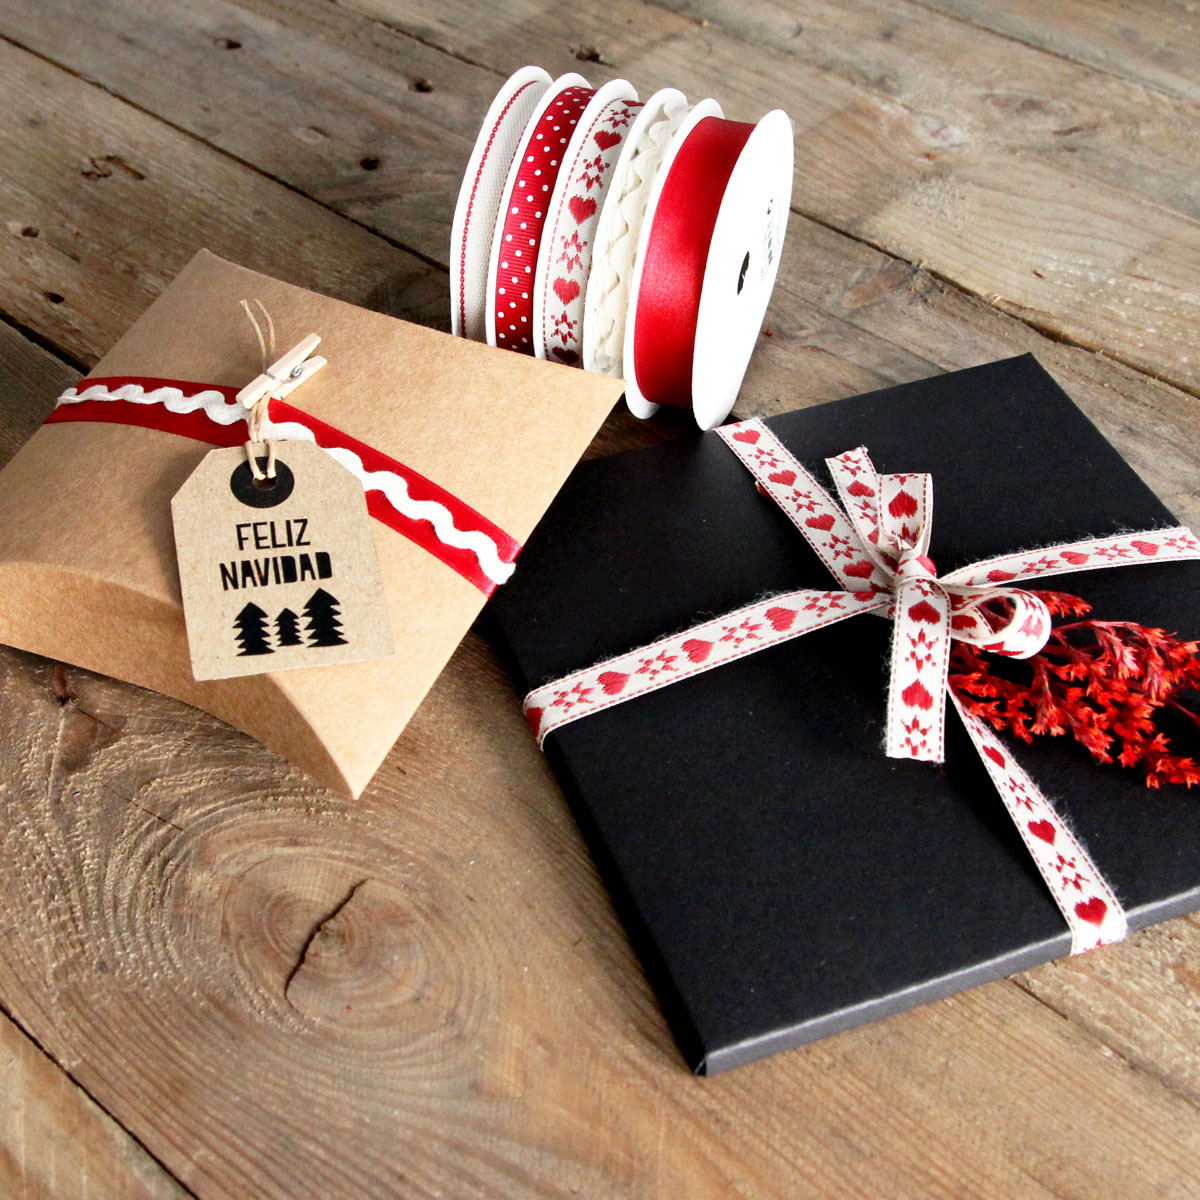 Mr_wonderful_shop_decoracion_navidad_2014_079